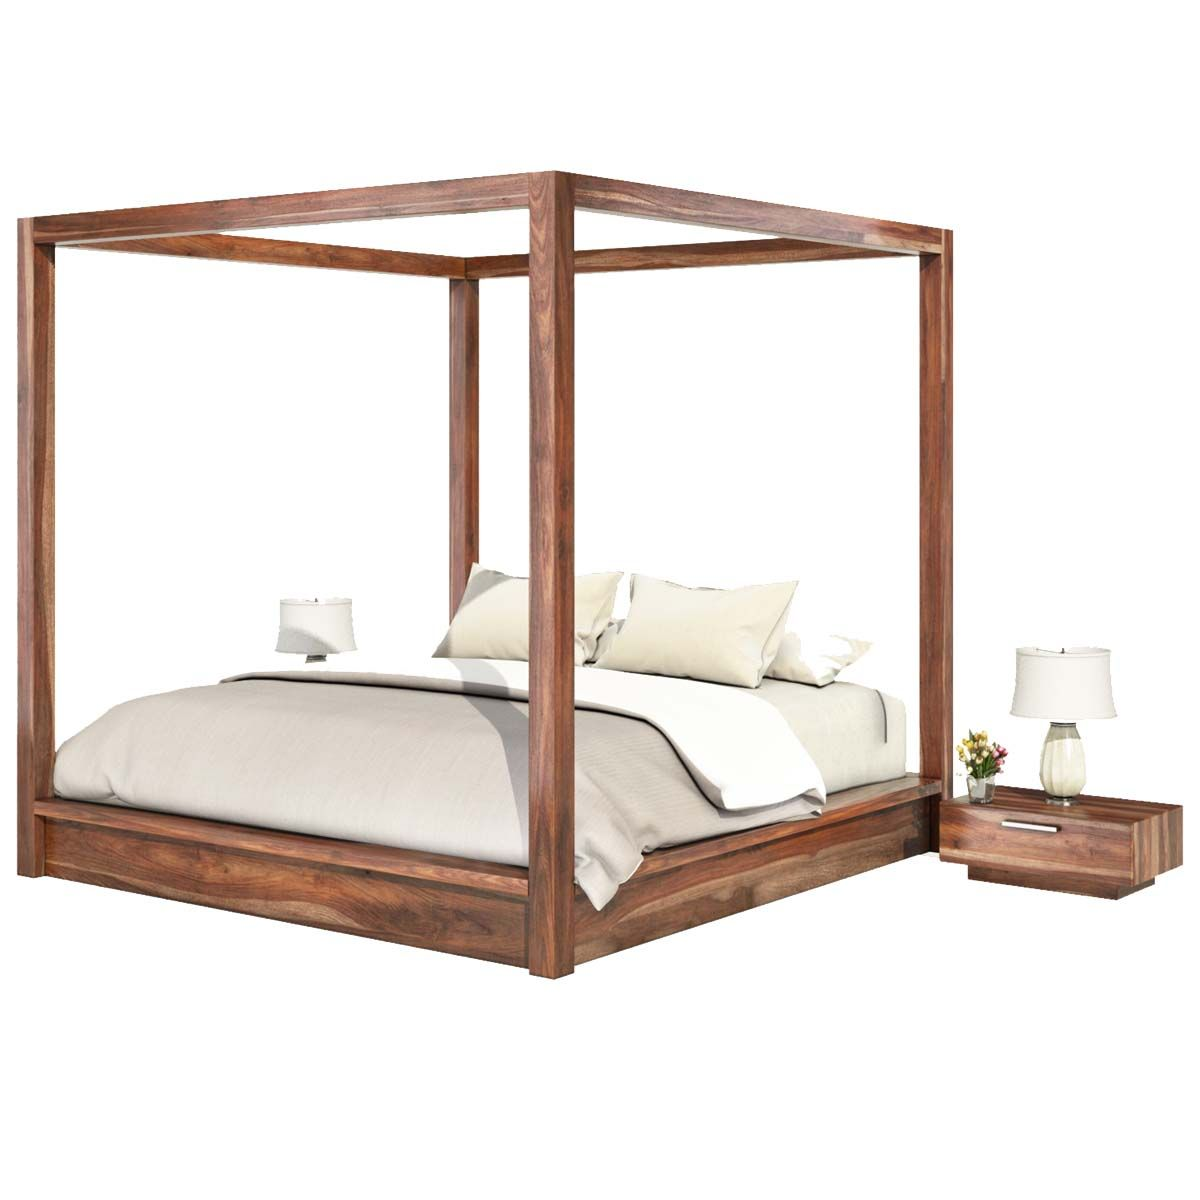 Hampshire Rustic Solid Wood King Size